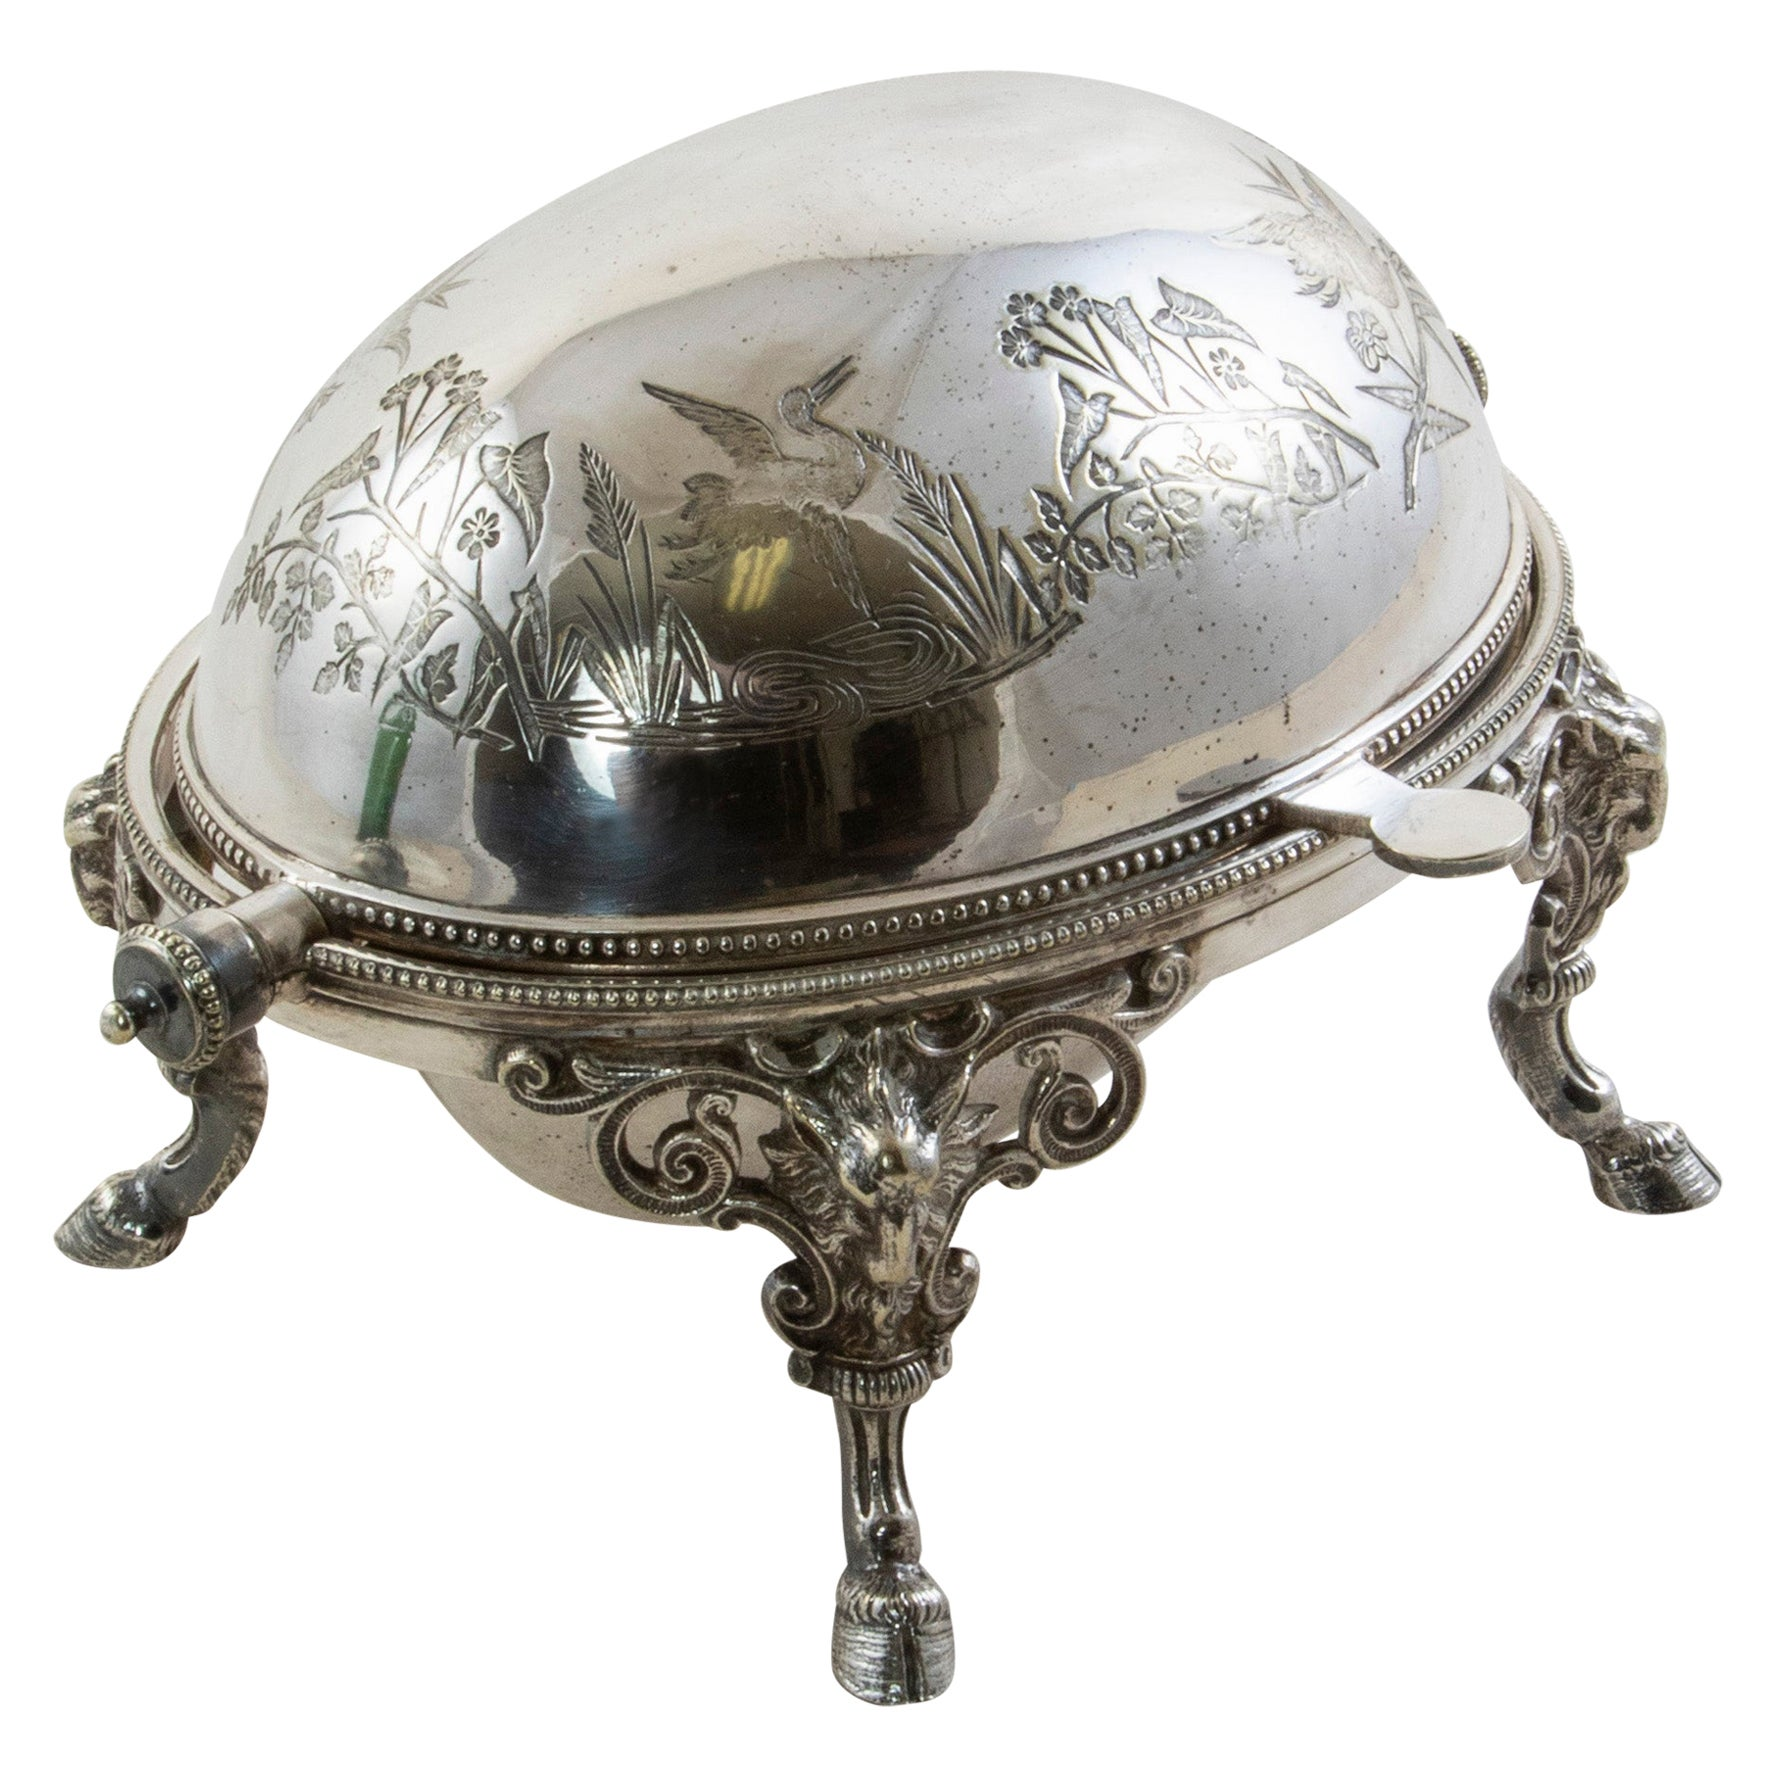 French Silver Plate Domed Serving Piece with Swivel Lid c. 1900